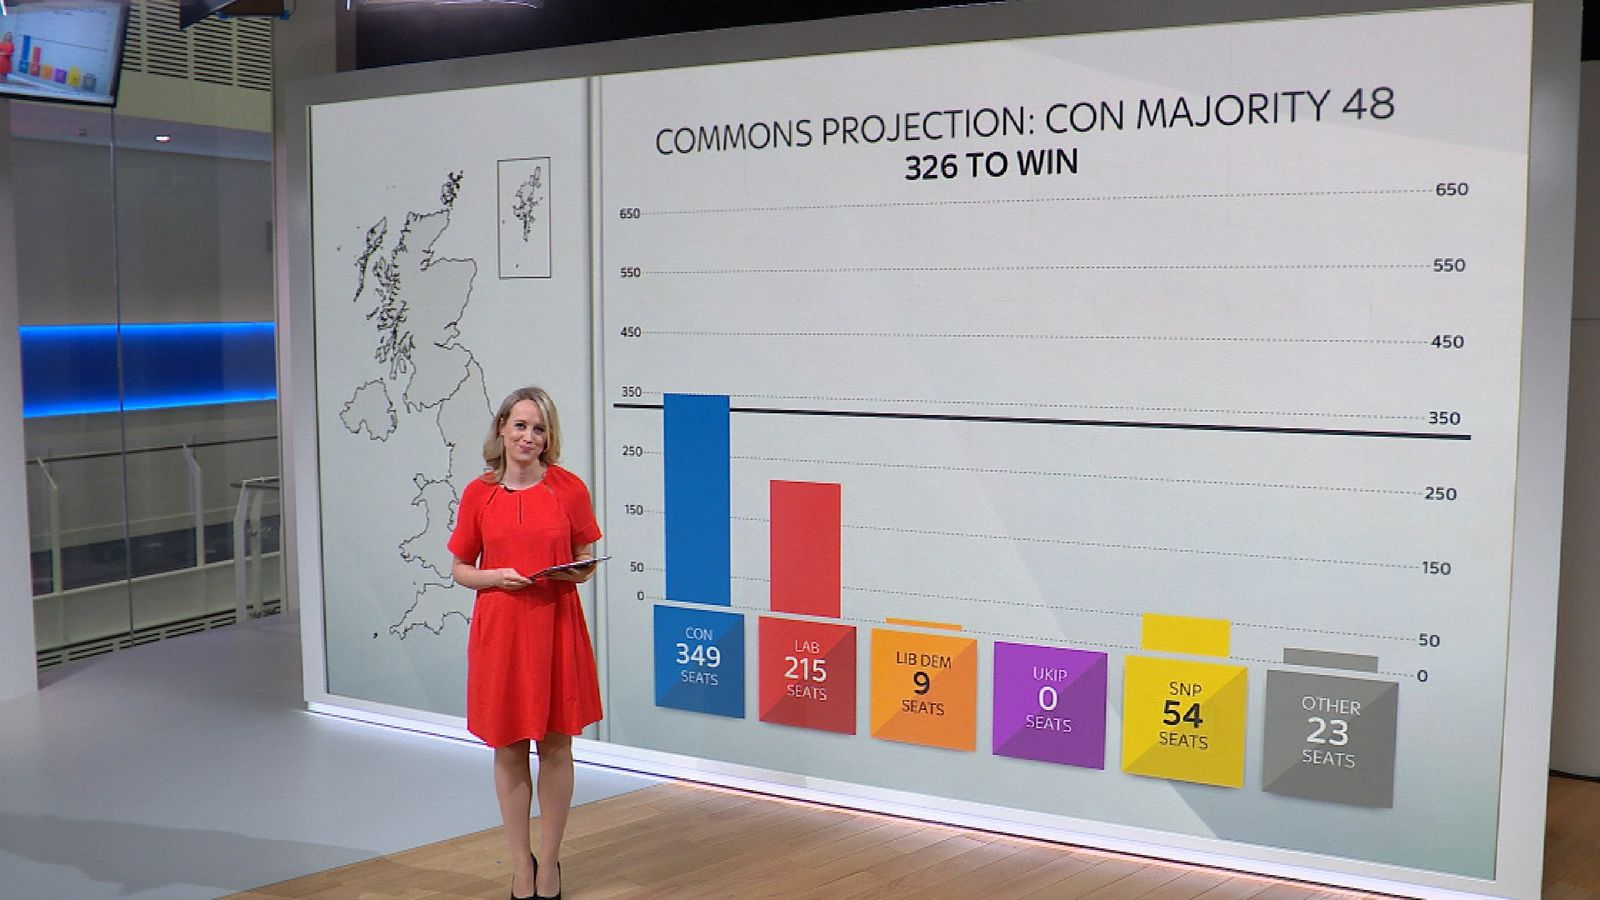 Local Election Results And General Election Projection